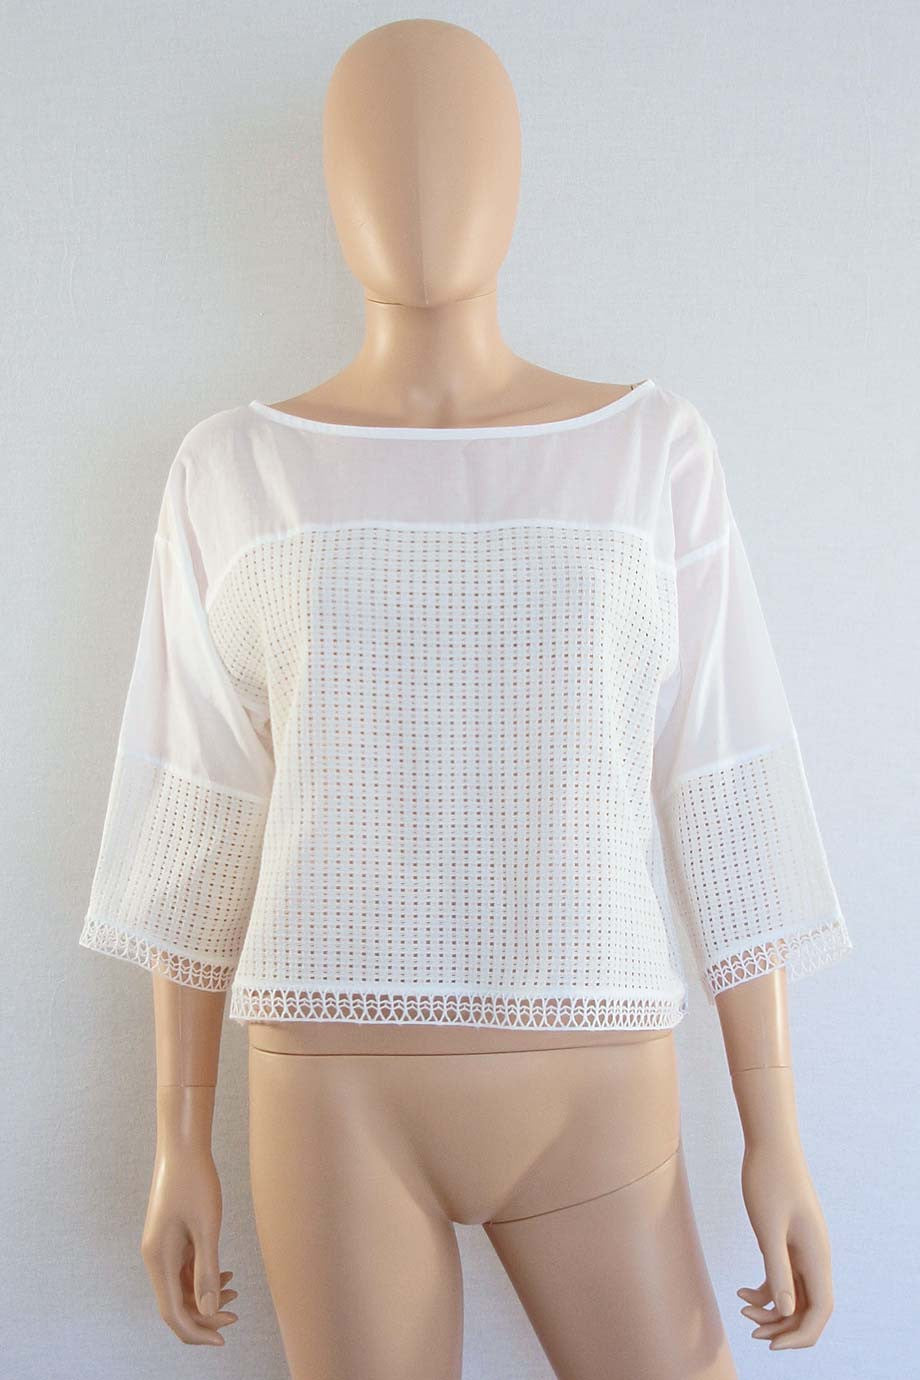 Paul & Joe Cropped White Cotton Mesh 3/4 Sleeve Top / Sz 1 - Style Therapy  - 2